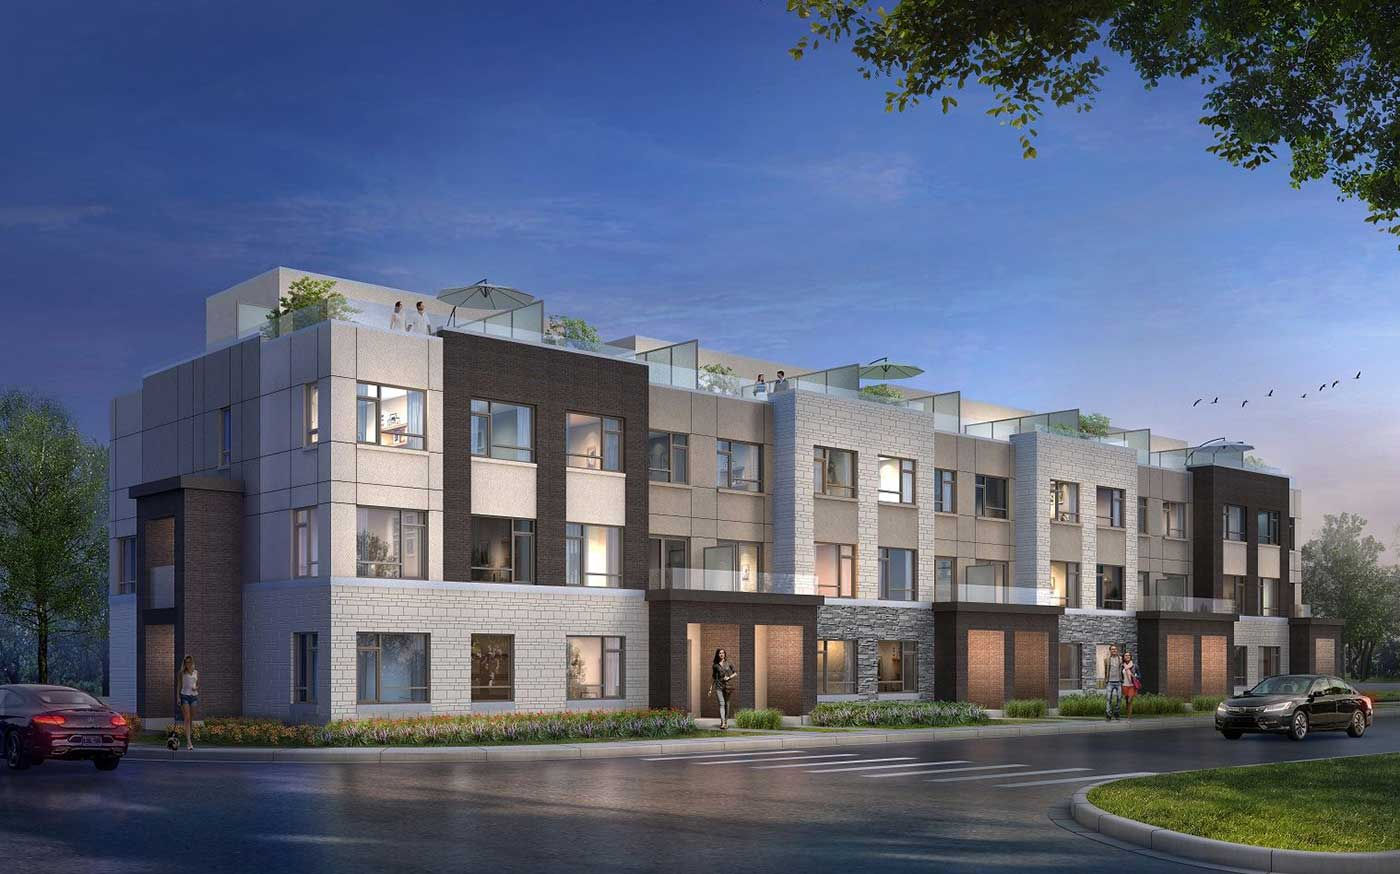 burlington-townhomes-station-west-condos-milan-collection-stationwest.jpg